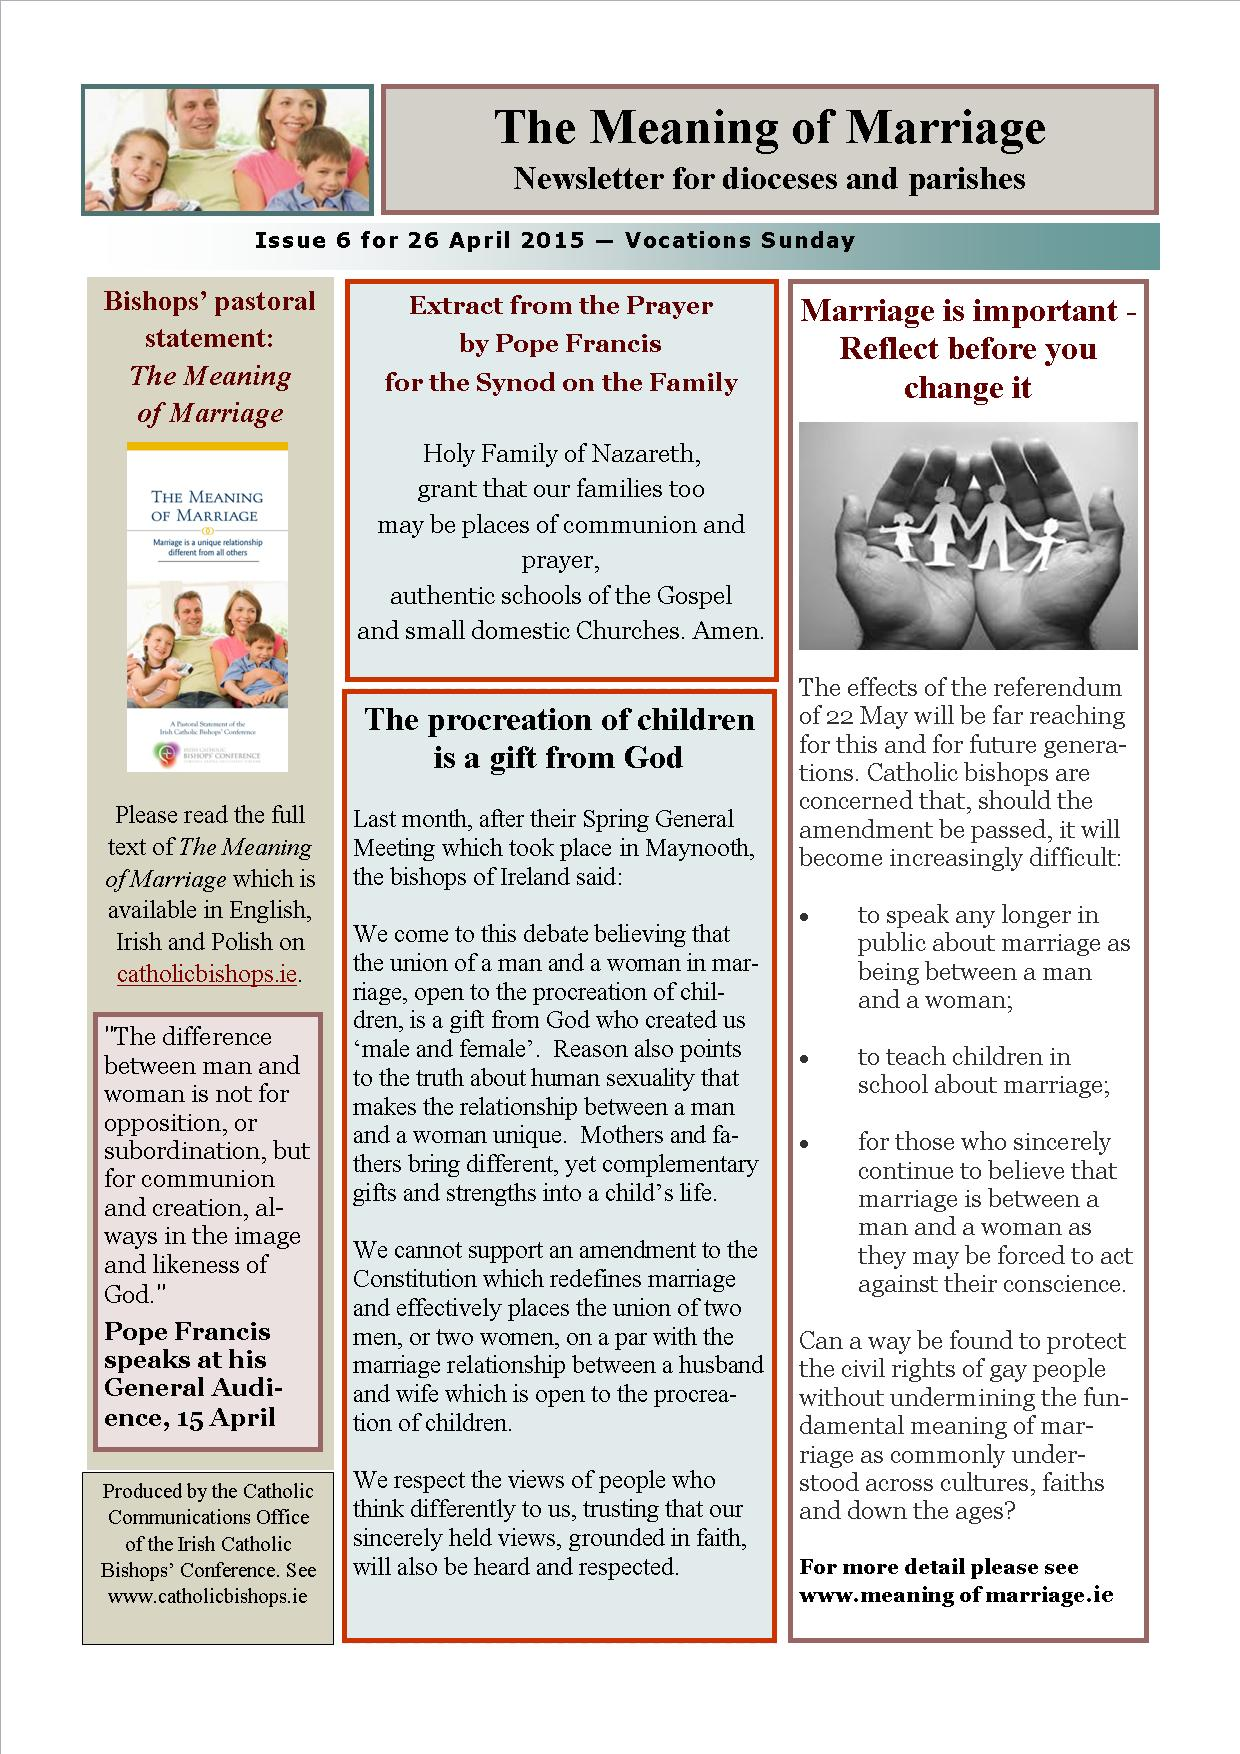 the meaning of marriage newsletters irish catholic bishops conference